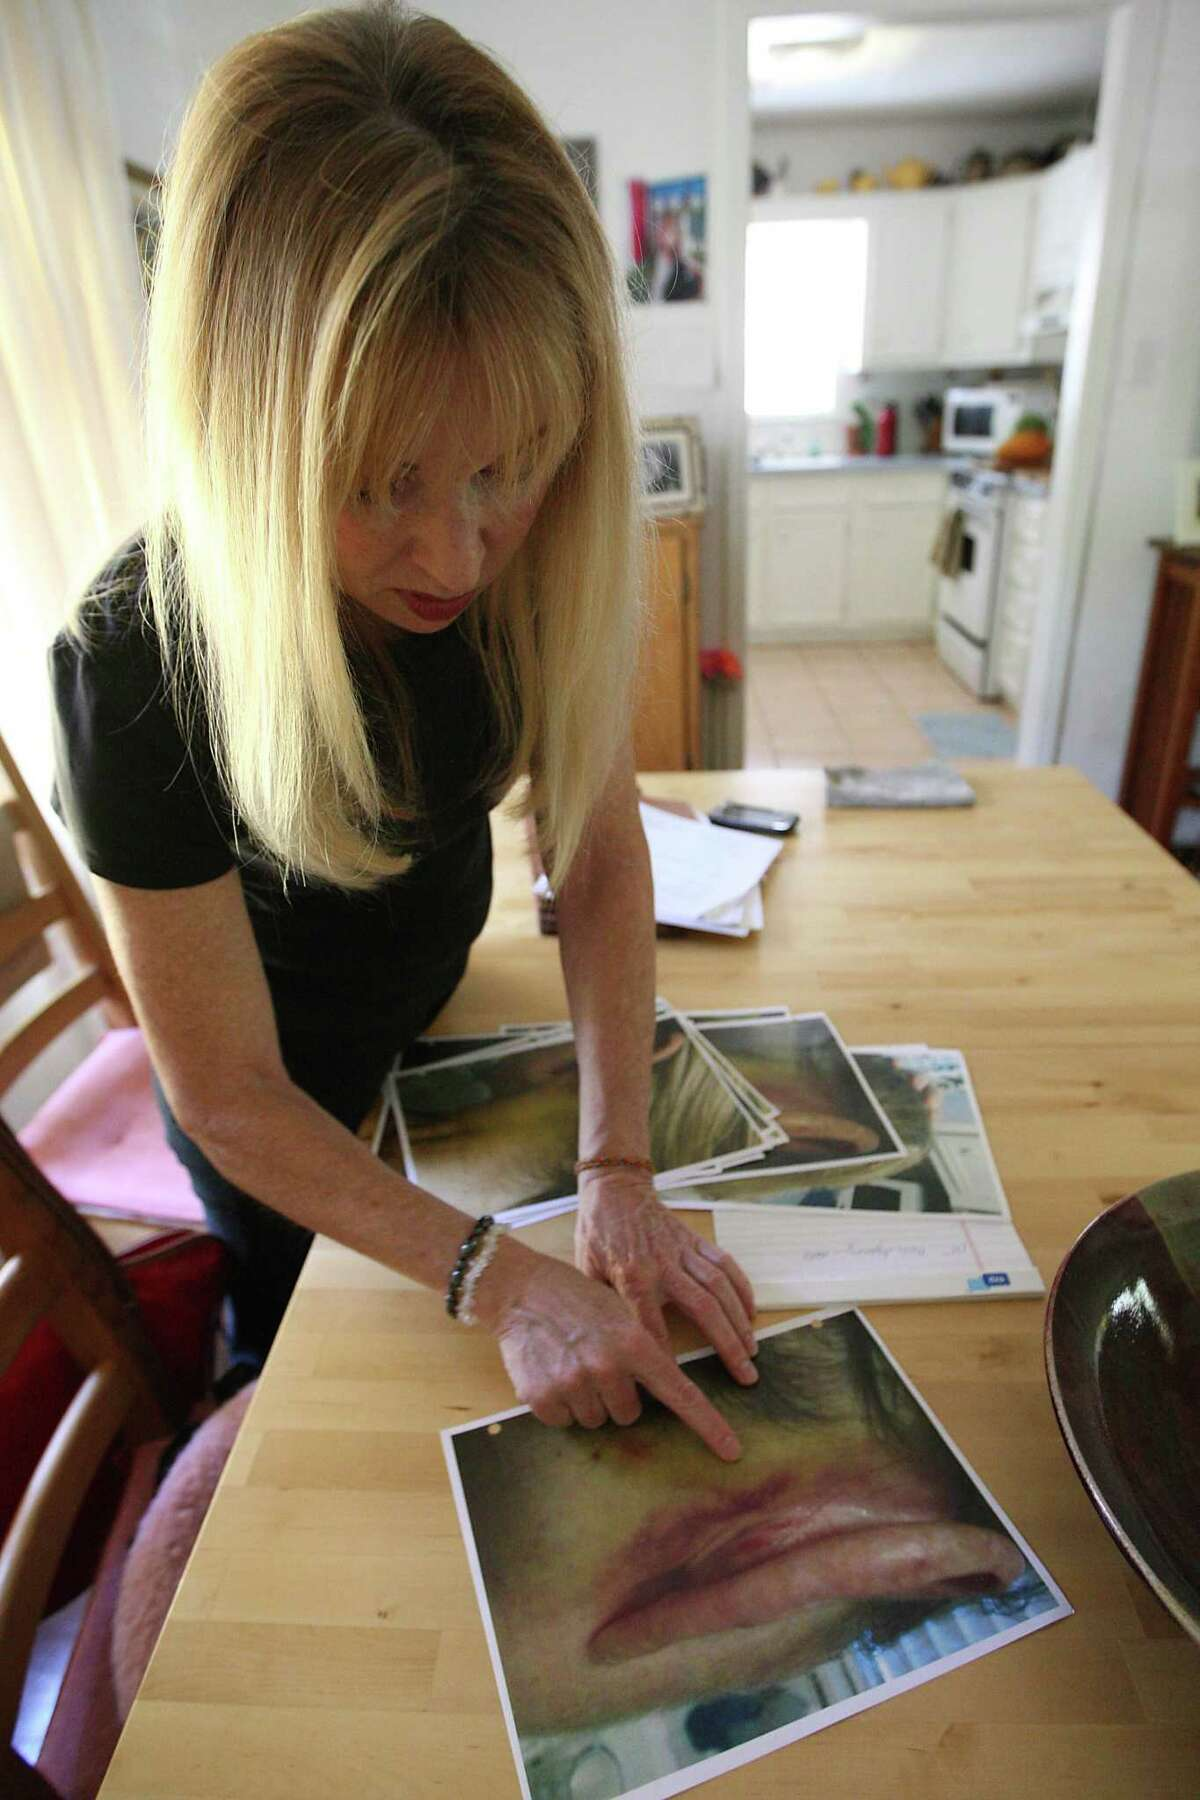 """Linda Geffin, a former senior assistant county attorney in Harris County, looks at photos taken of her in September 2011 after someone attacked her in her Houston home on April 19, 2012. Geffin was attacked and brutally beaten by an unknown assailant after spending three years as the county's lead enforcer of """"nuisance laws"""" - shutting down or evicting a string of rogue massage parlors, strip clubs, bars from 2009 to 2011. She eventually returned to work at the county, and now focuses on providing training to law enforcement and nonprofits in the areas of human and labor trafficking."""